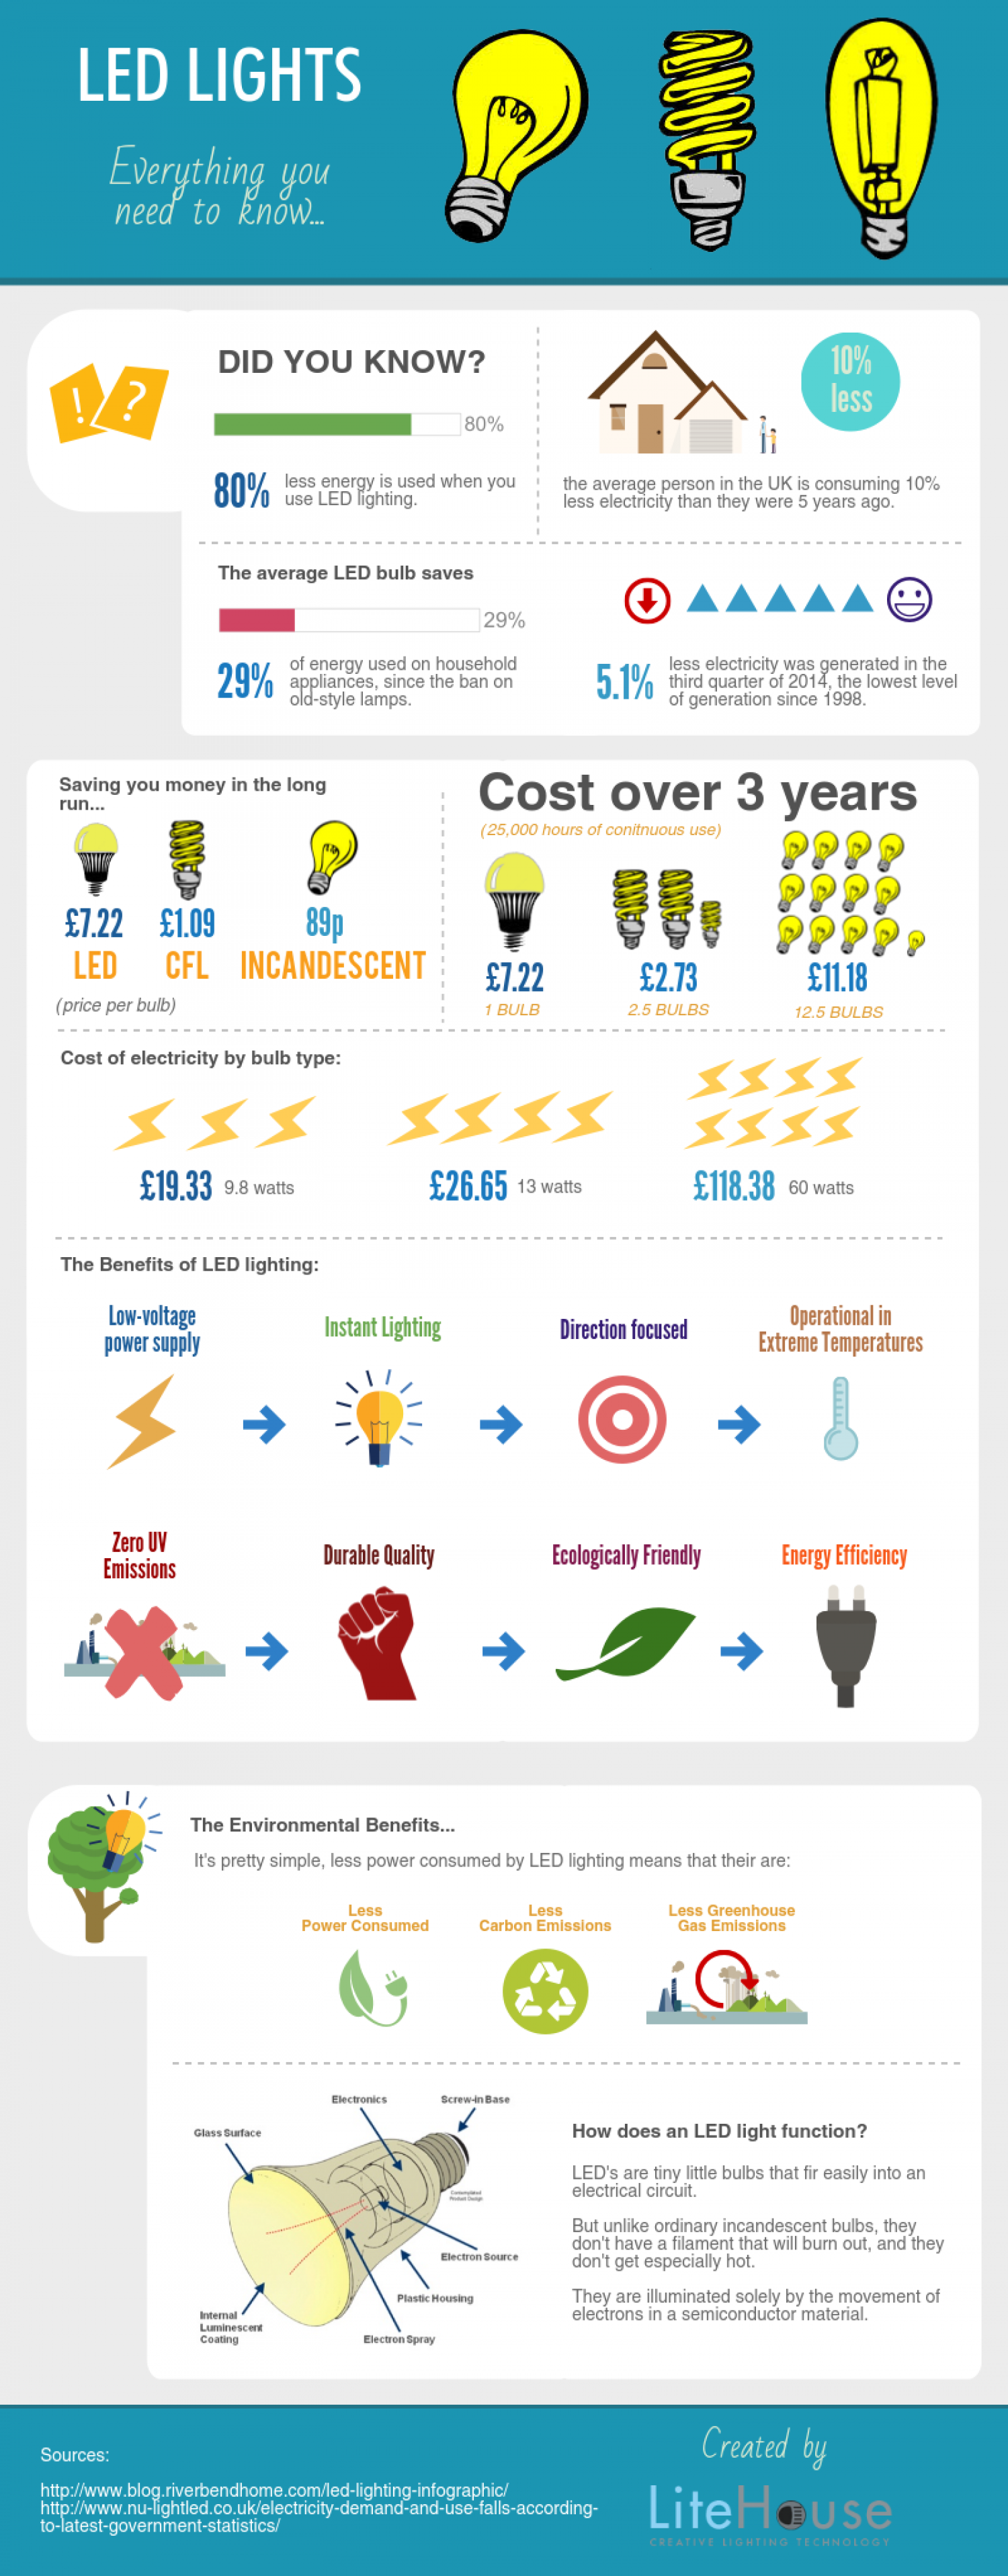 LED Lights: Everything You Need To Know Infographic